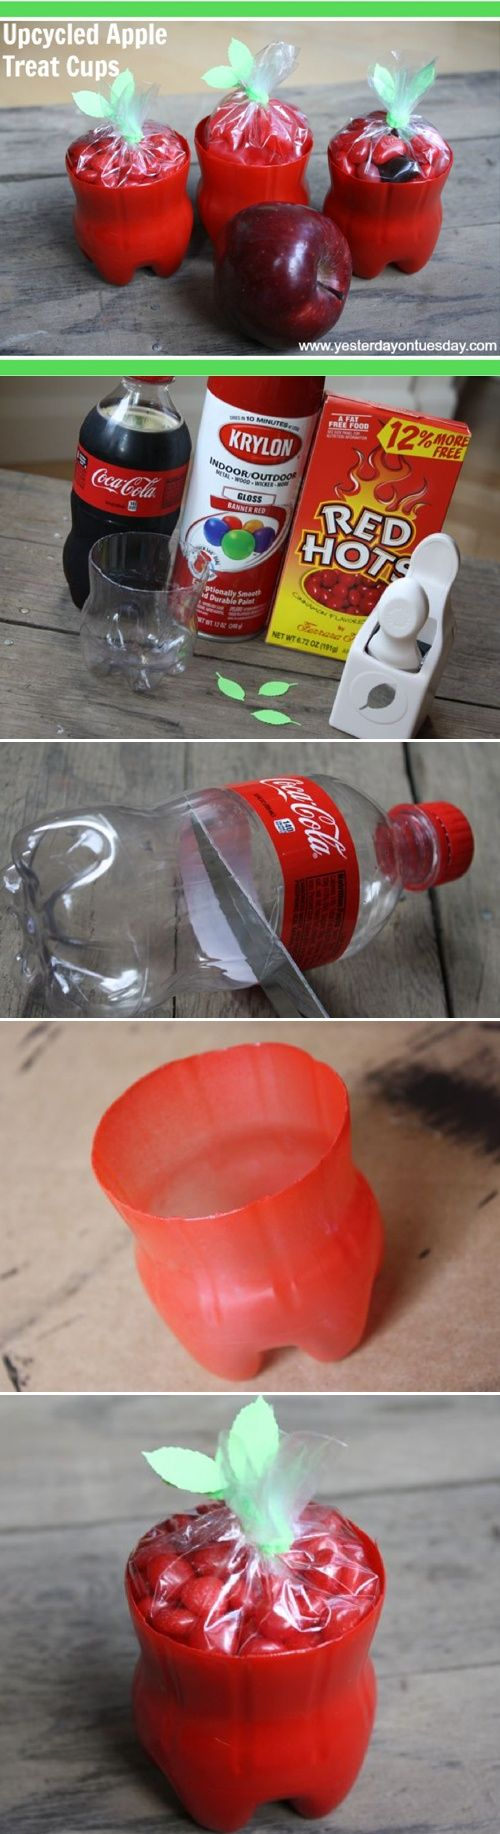 DIY Plastic Bottle Apple Treat Cup– maybe end of the school year gift?